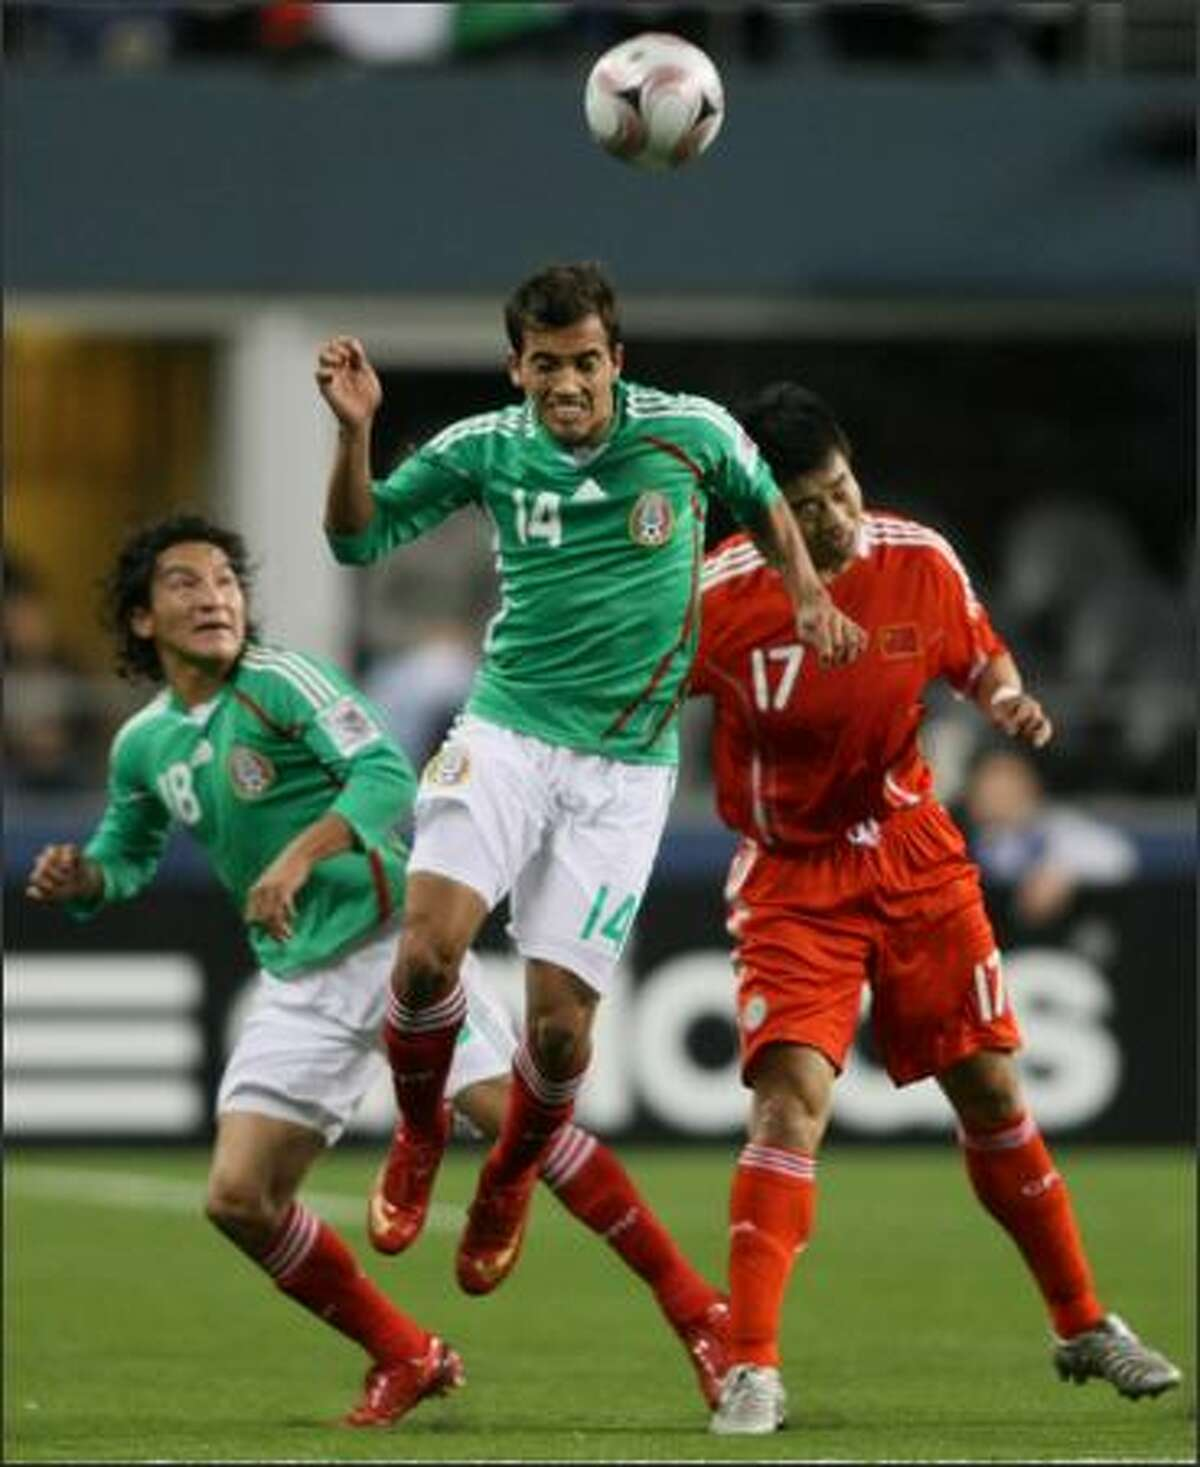 Mexican player Adrian Aldrete (14) heads the ball against Chinese player Sun Ji (17) in the first half of a friendly match between Mexico and China at Qwest Field. At left is Mexican player Cesar Villaluz.